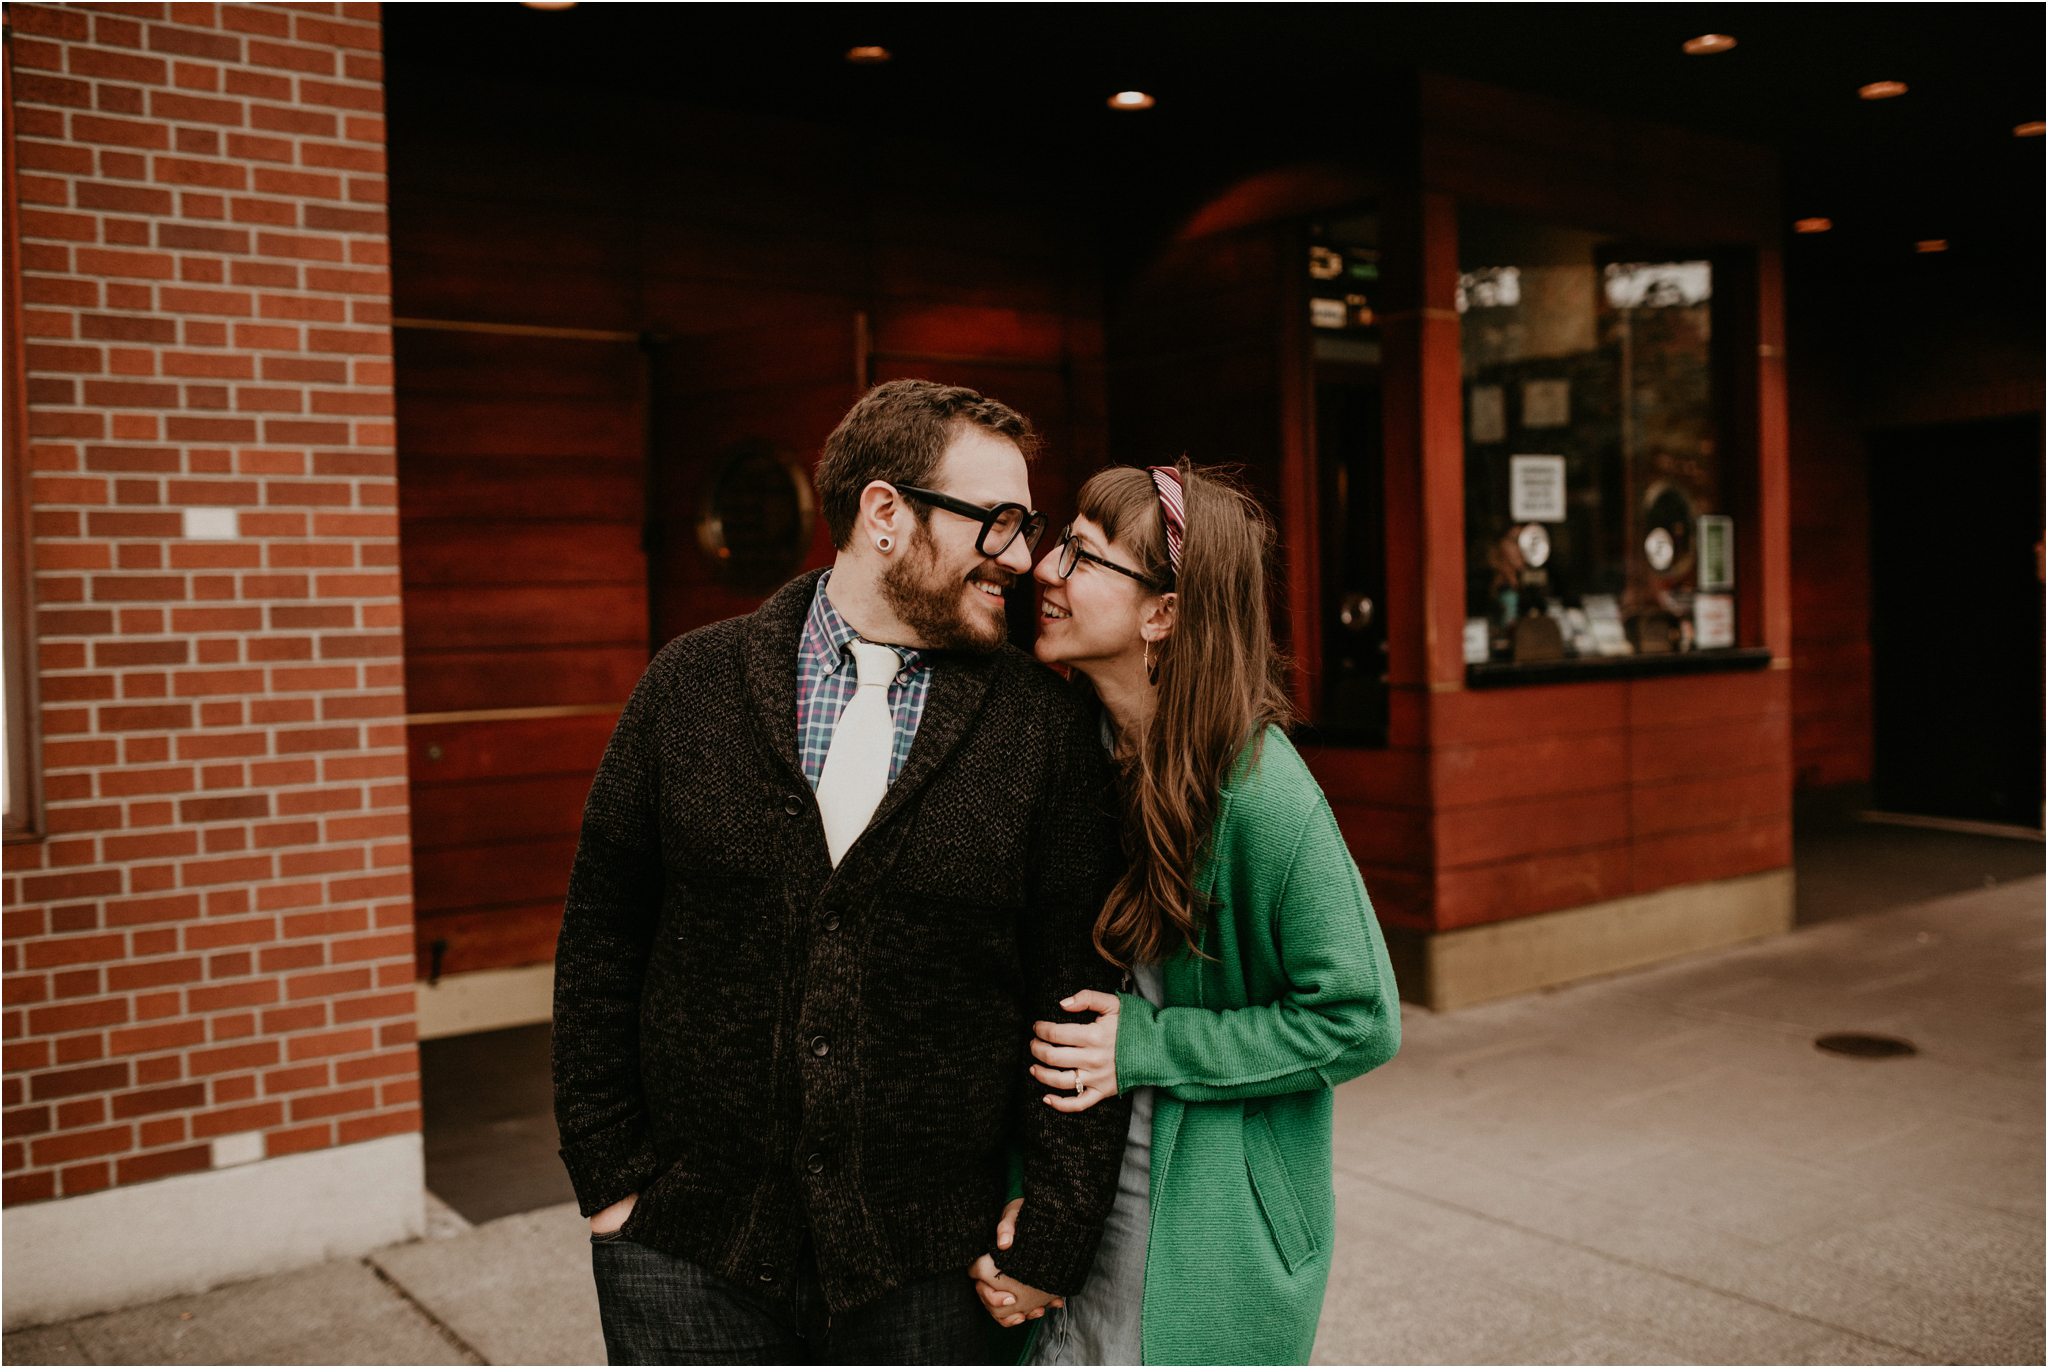 jaimie-and-jake-ballard-seattle-engagement-session-009.jpg